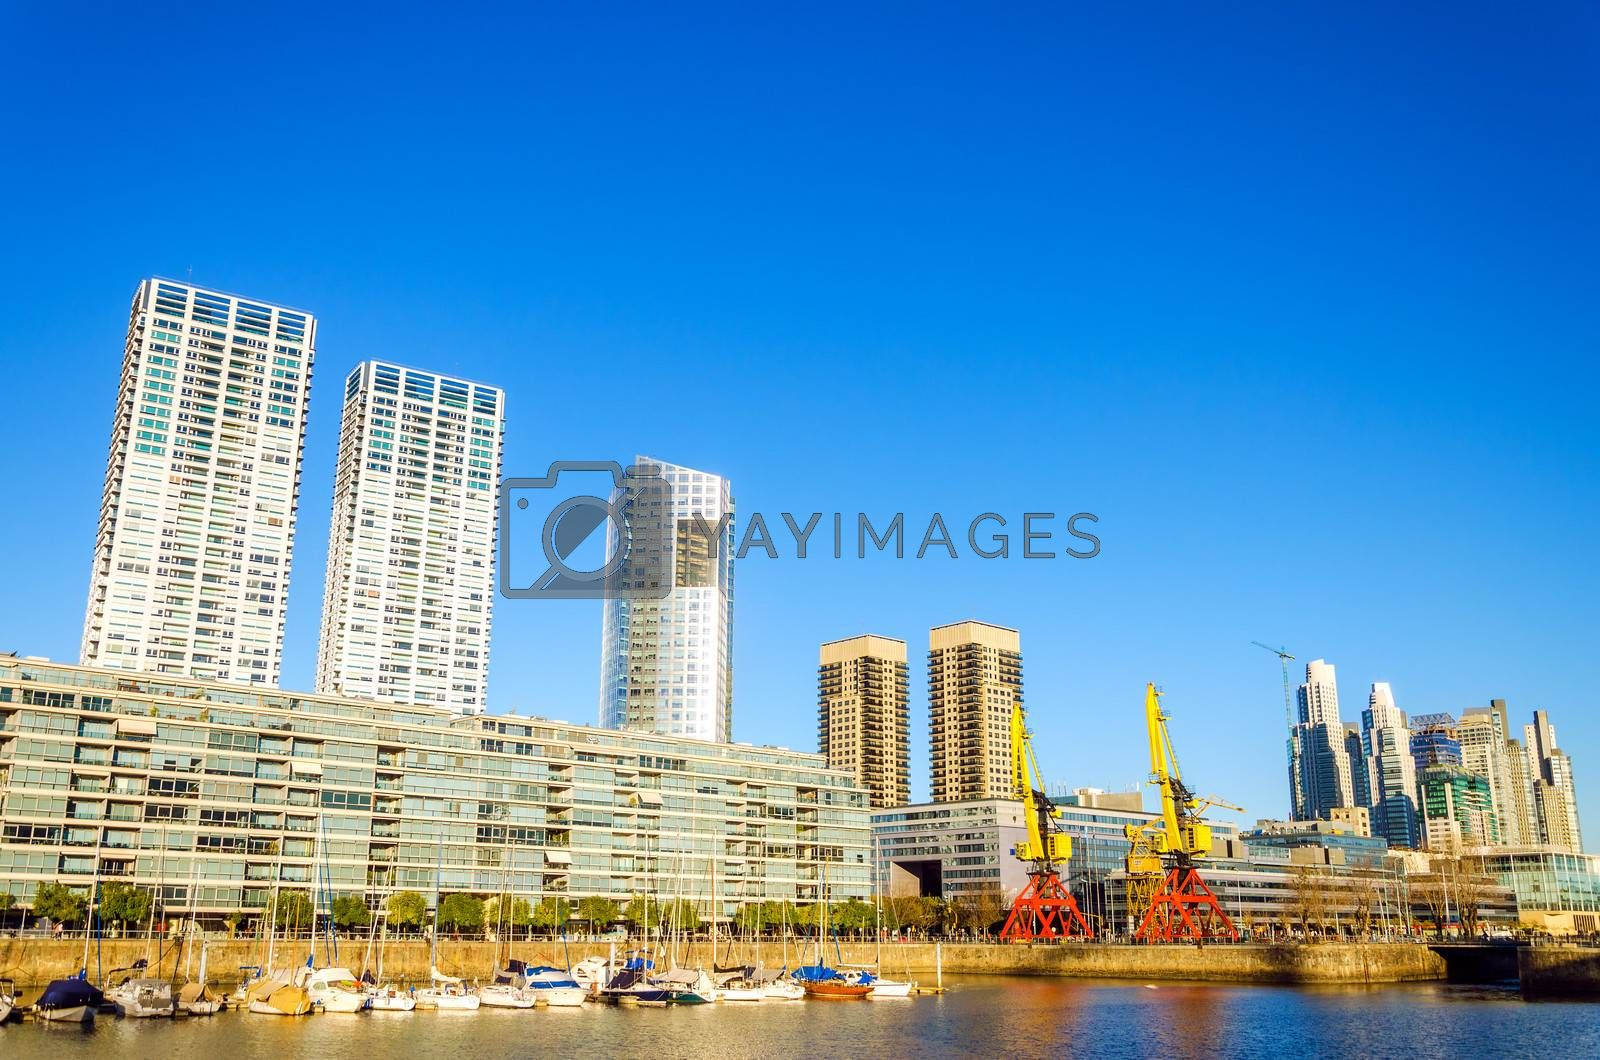 The waterfront in the Puerto Madero neighborhood of Buenos Aires